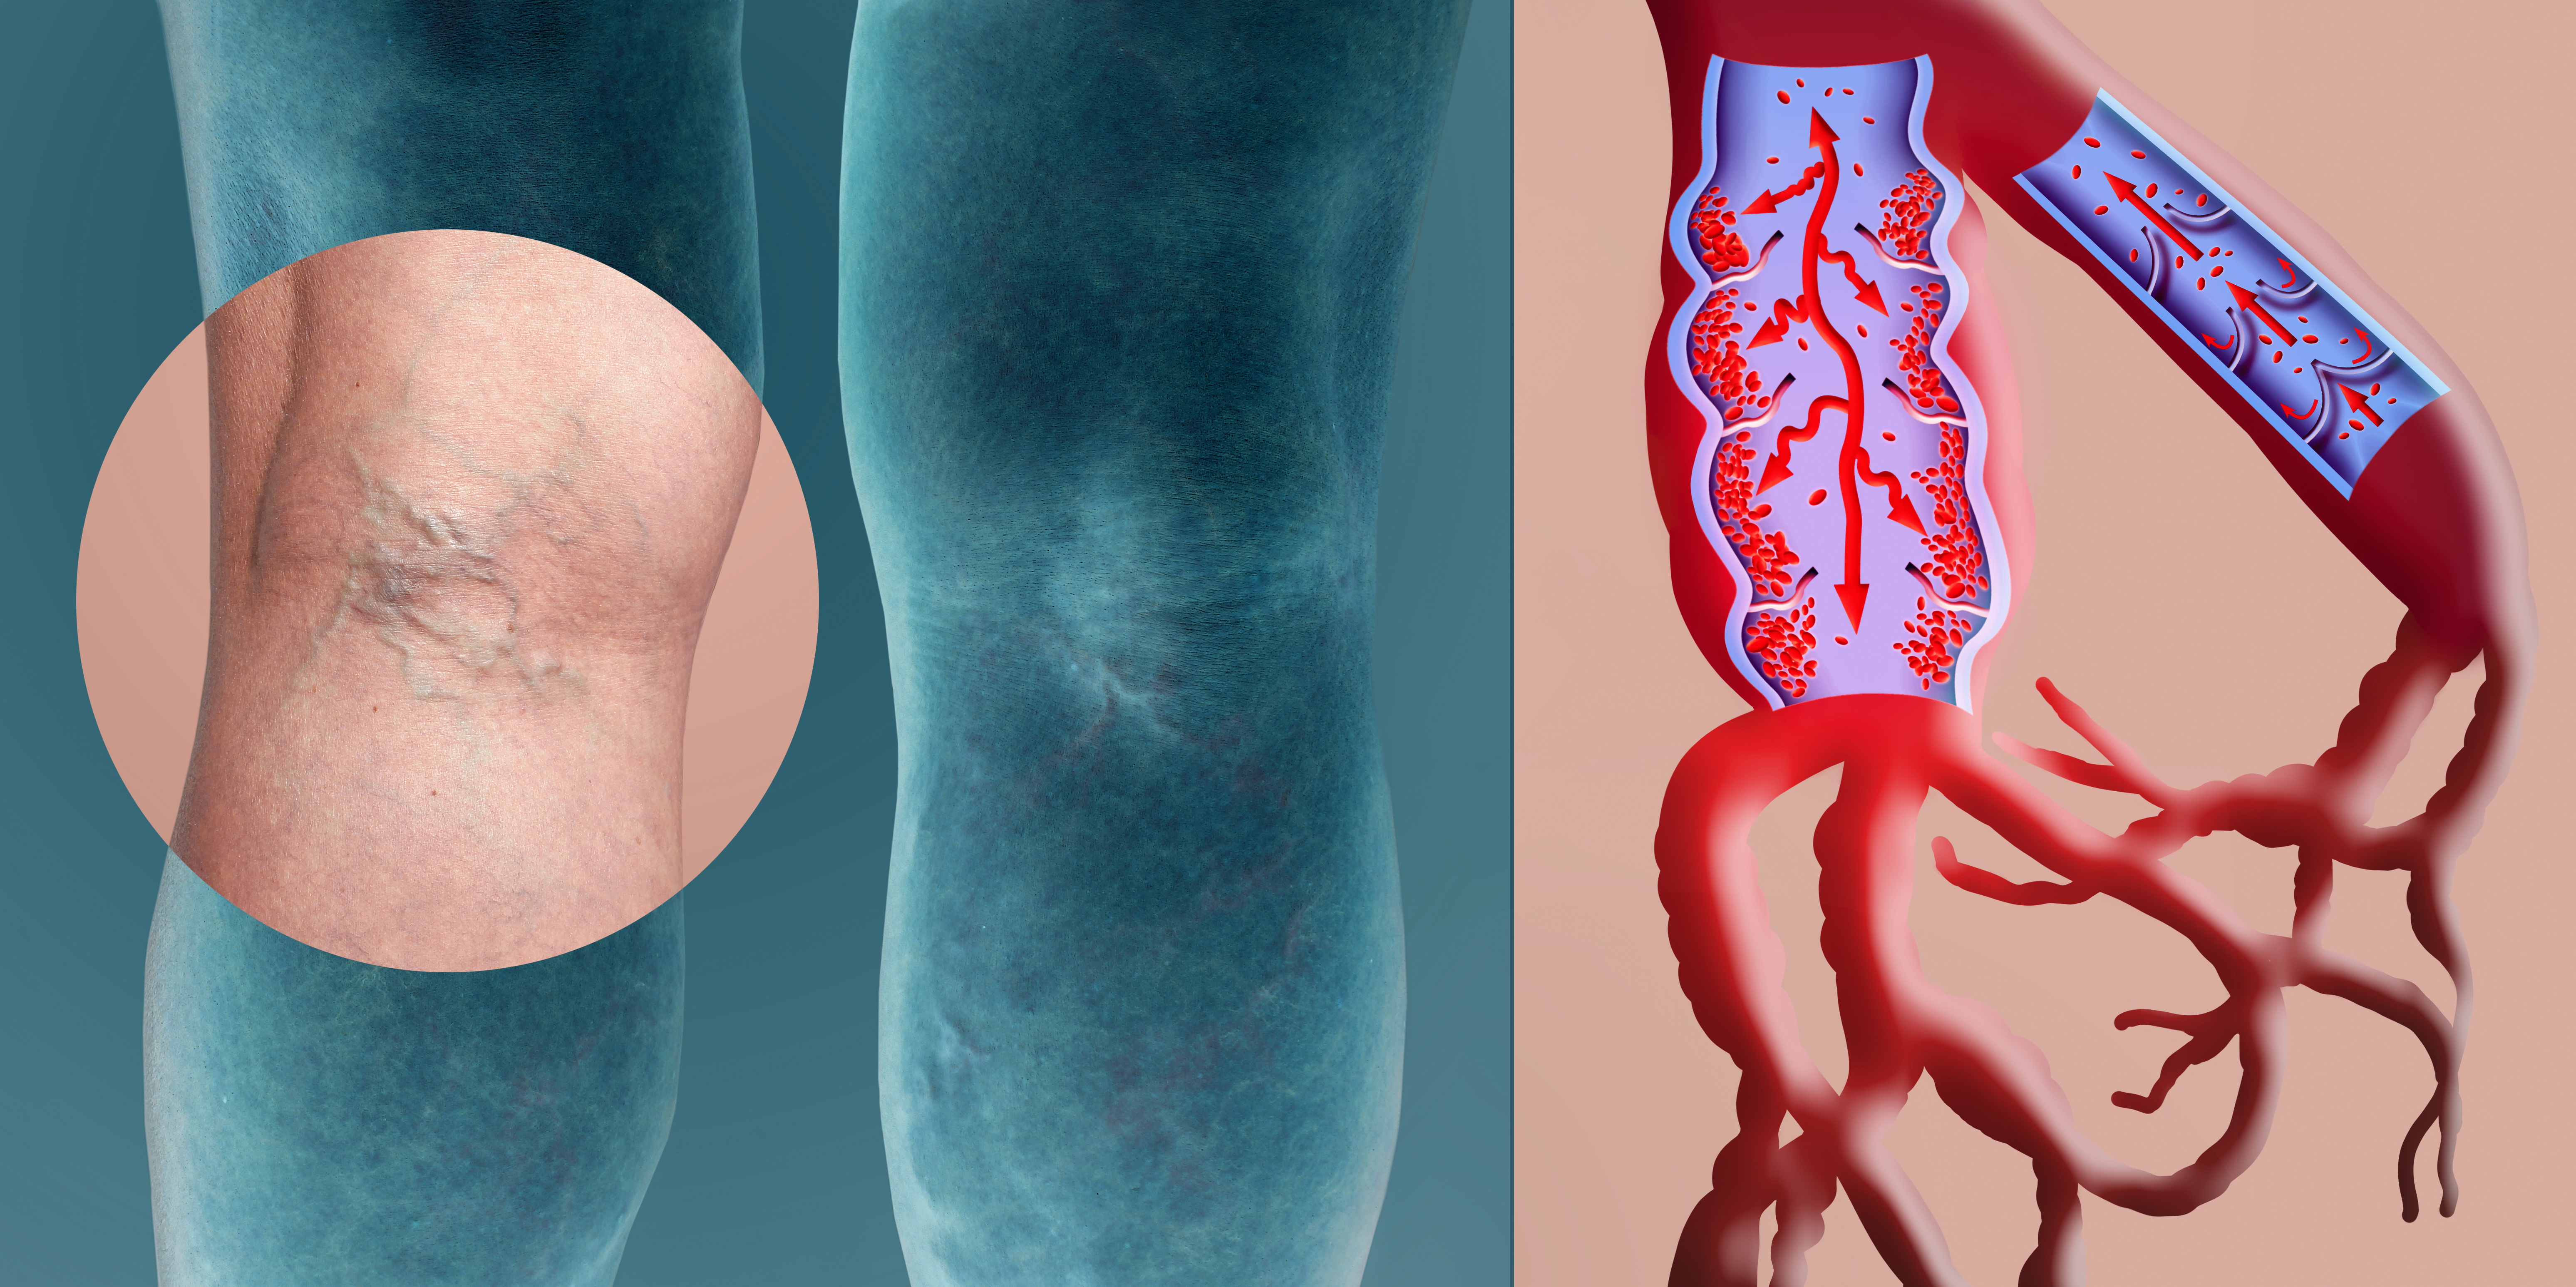 Legs with Varicose Veins and Vein diagrm